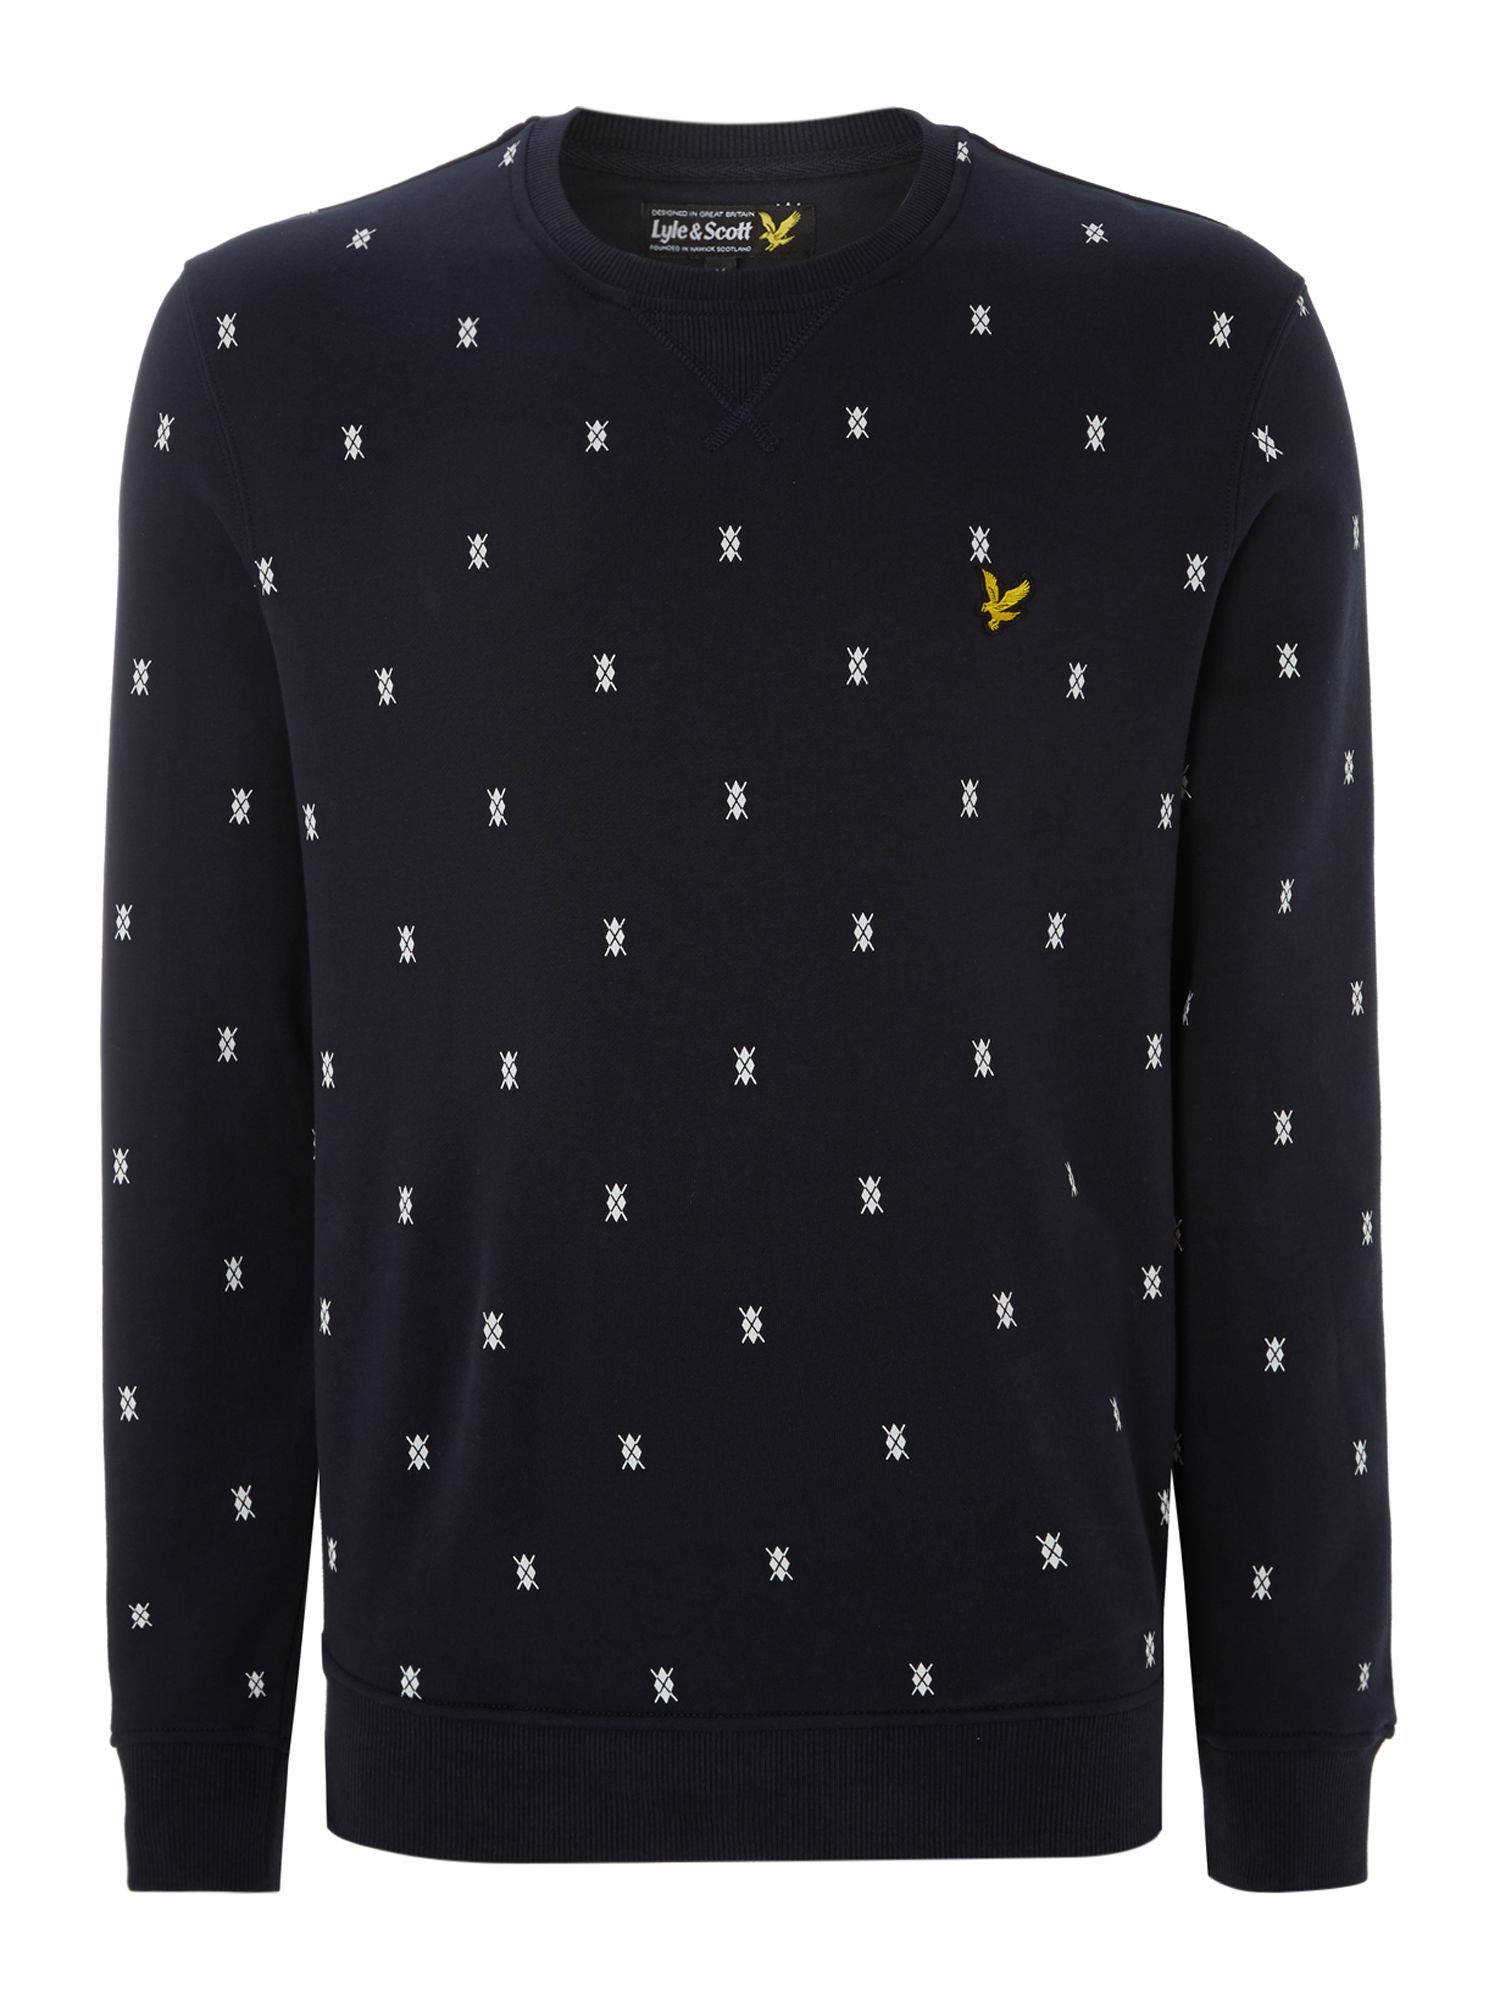 Micro argyle printed sweat shirt